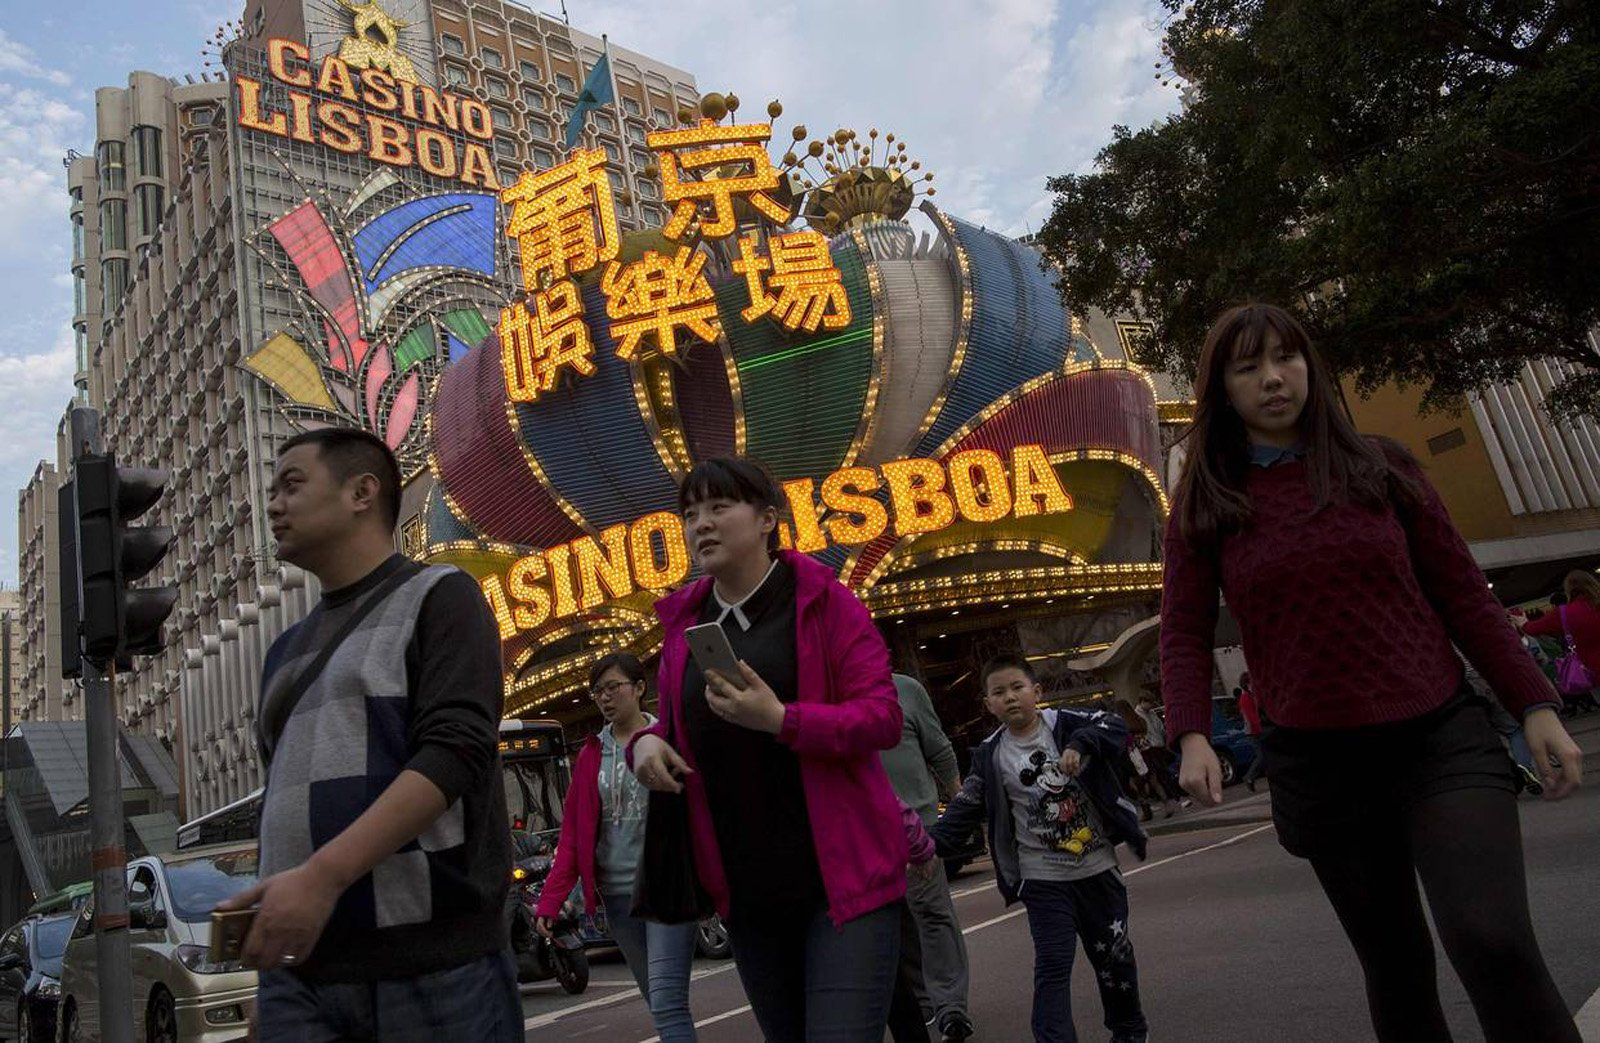 Macau gambling revenue rises 18 percent in March as high rollers return